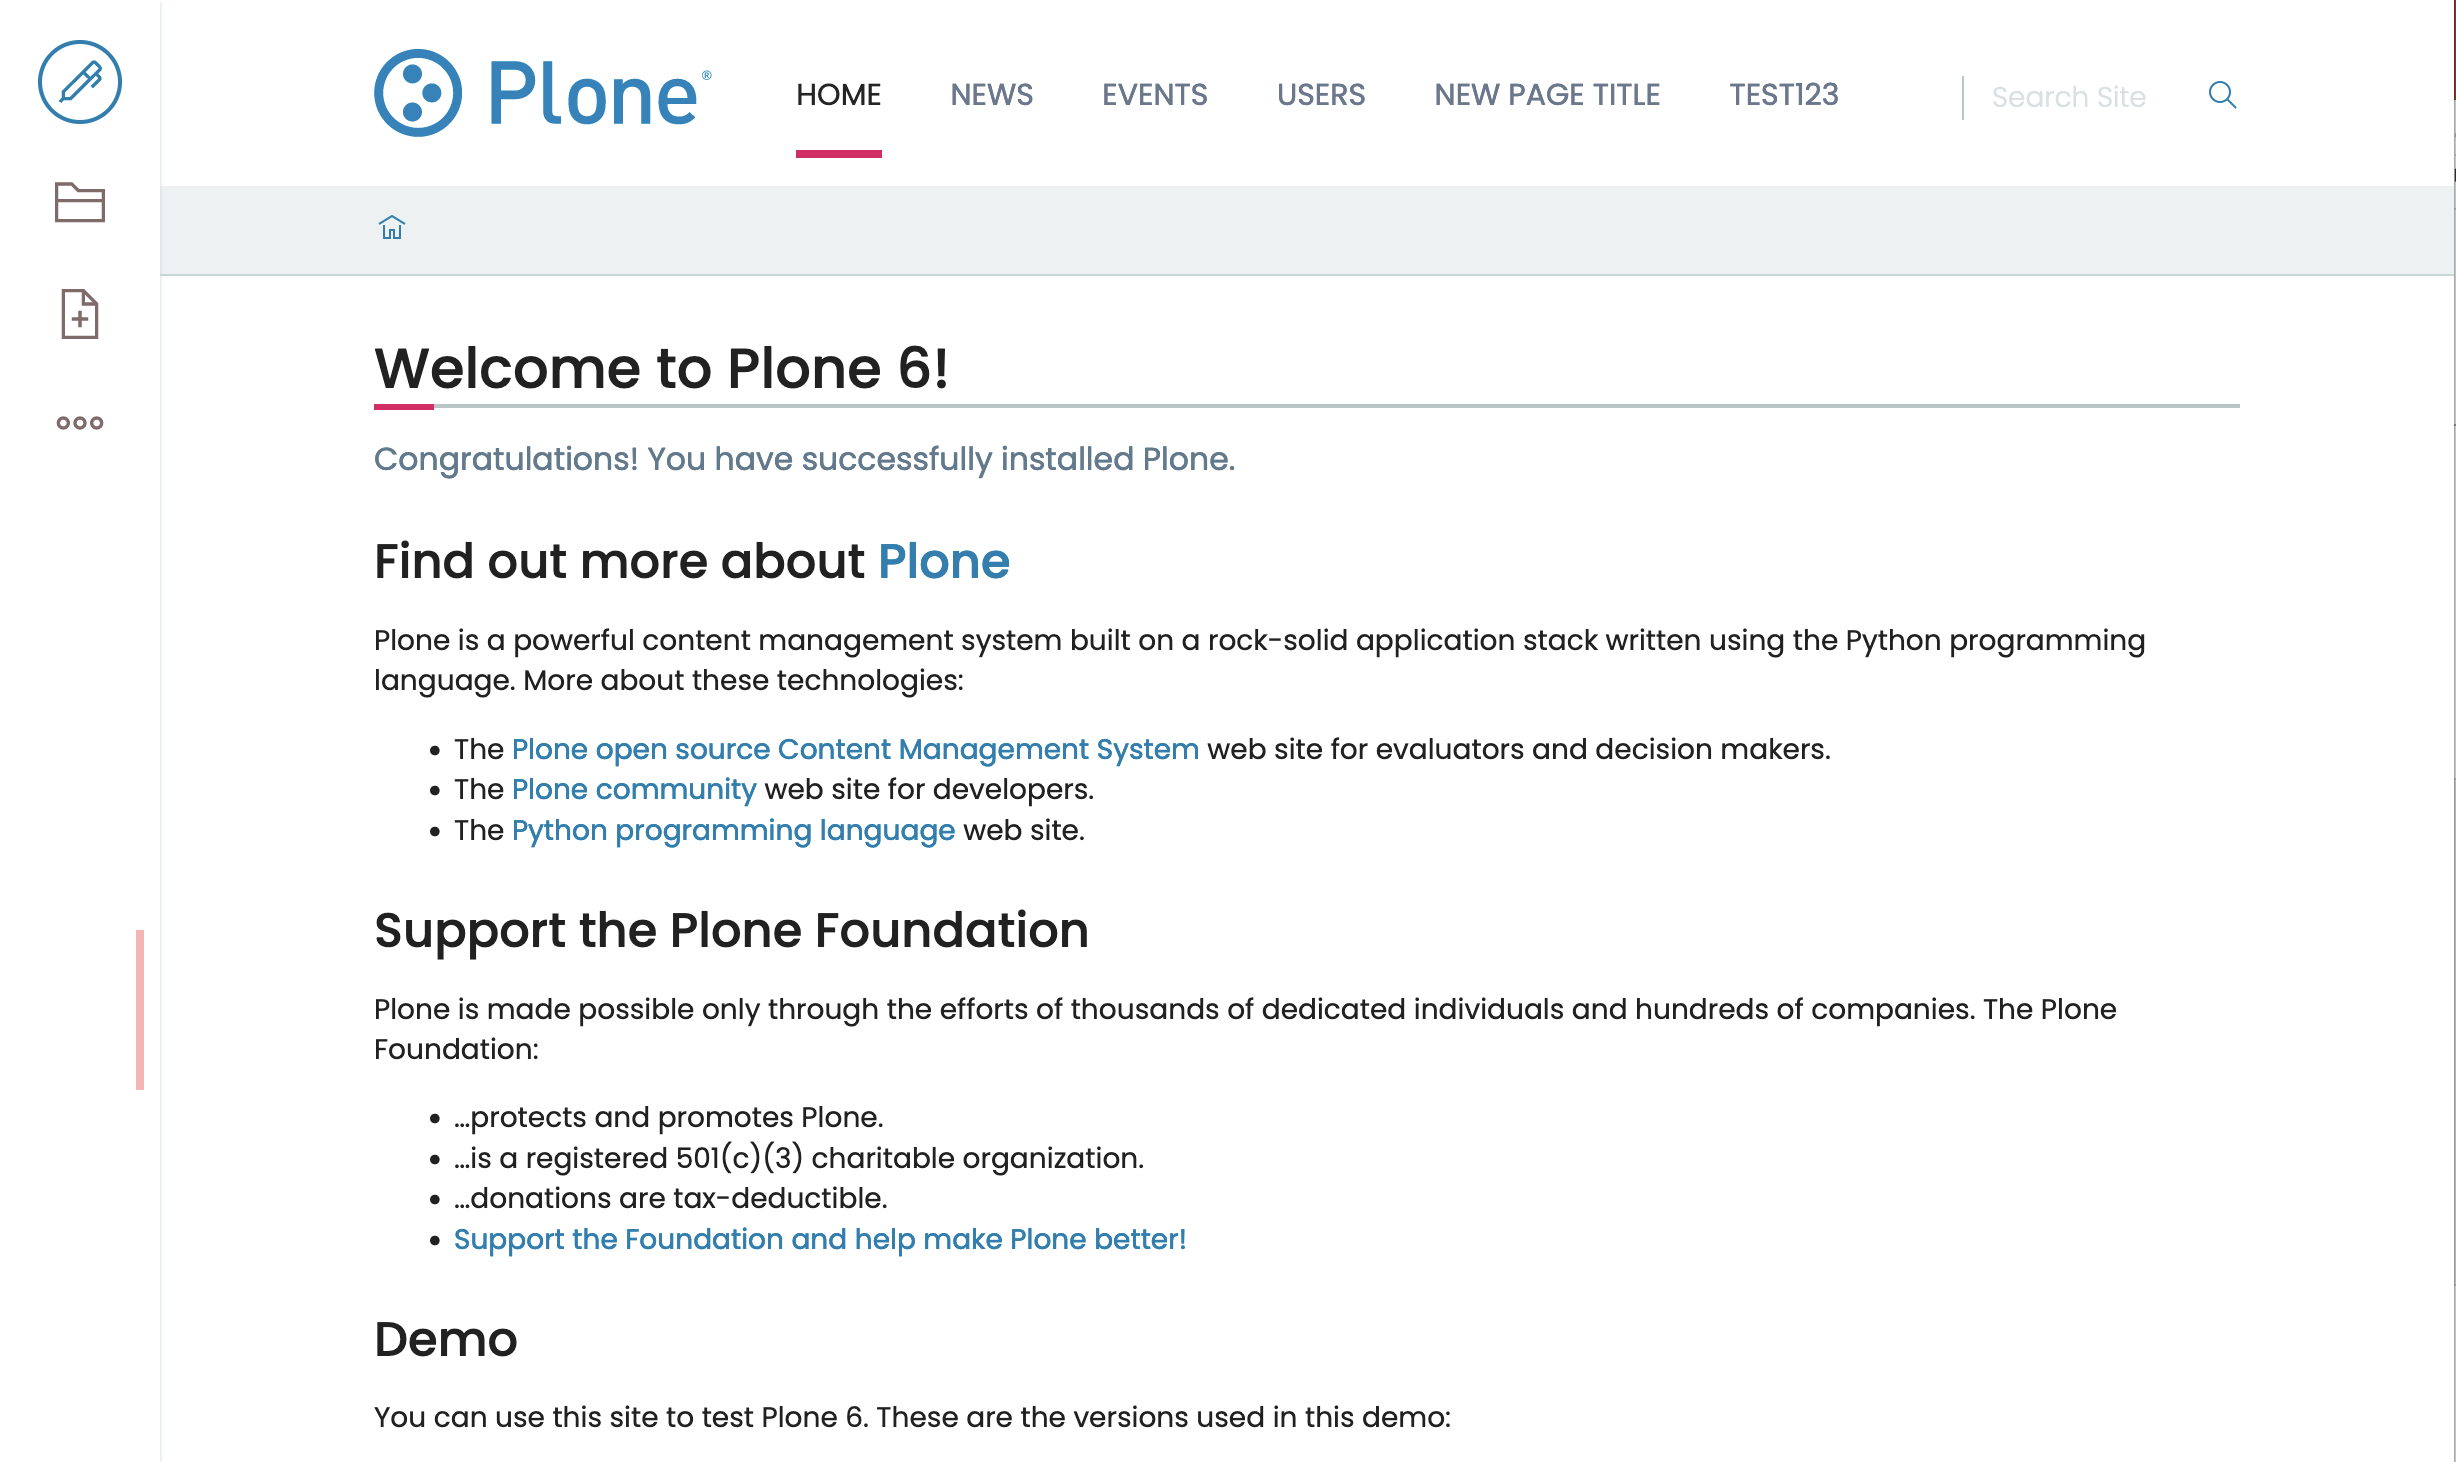 plone-6-on-2021-08-23.png